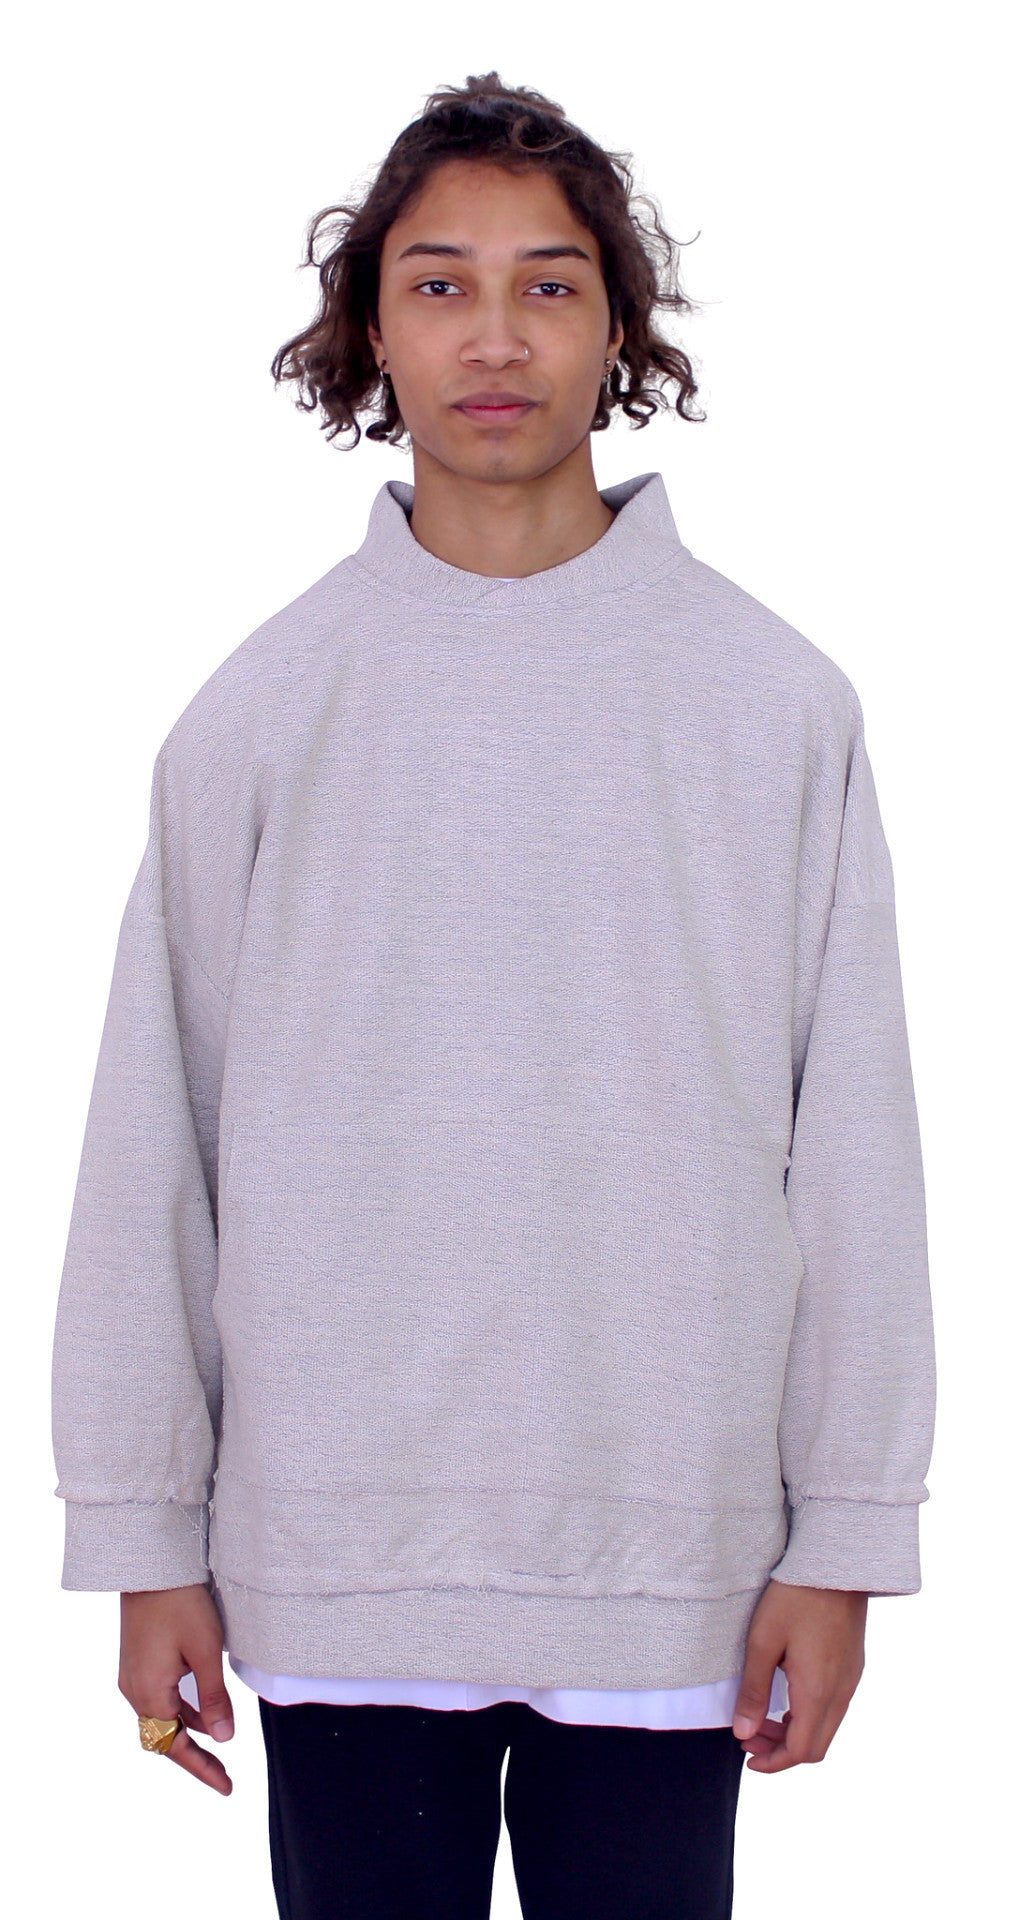 DESTROYED REVERSED PULLOVER - OFF WHITE